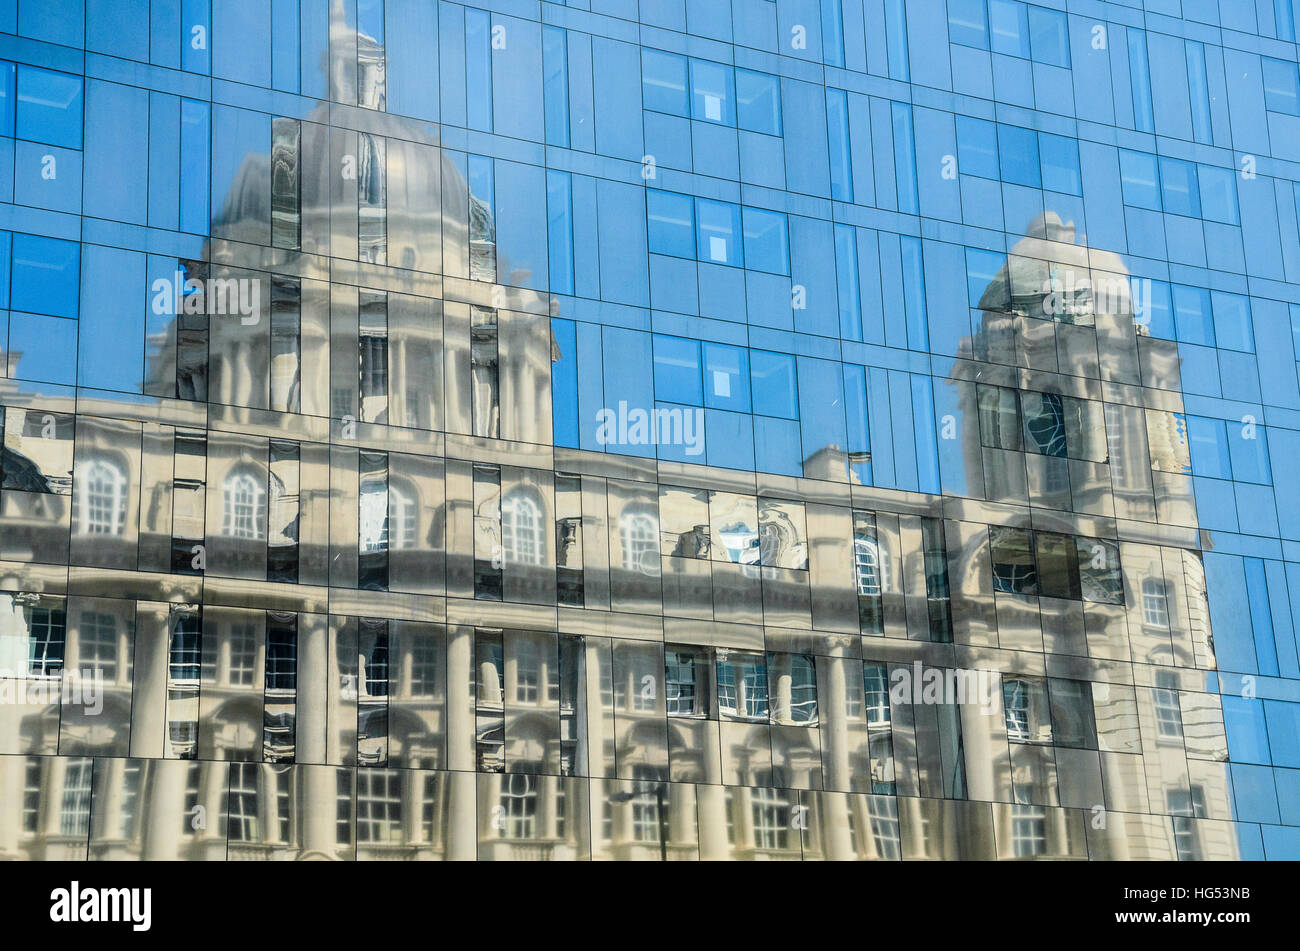 Reflection of the Port of Liverpool Building, one of the 'Three Graces' at Liverpool's famous Pier Head Stock Photo